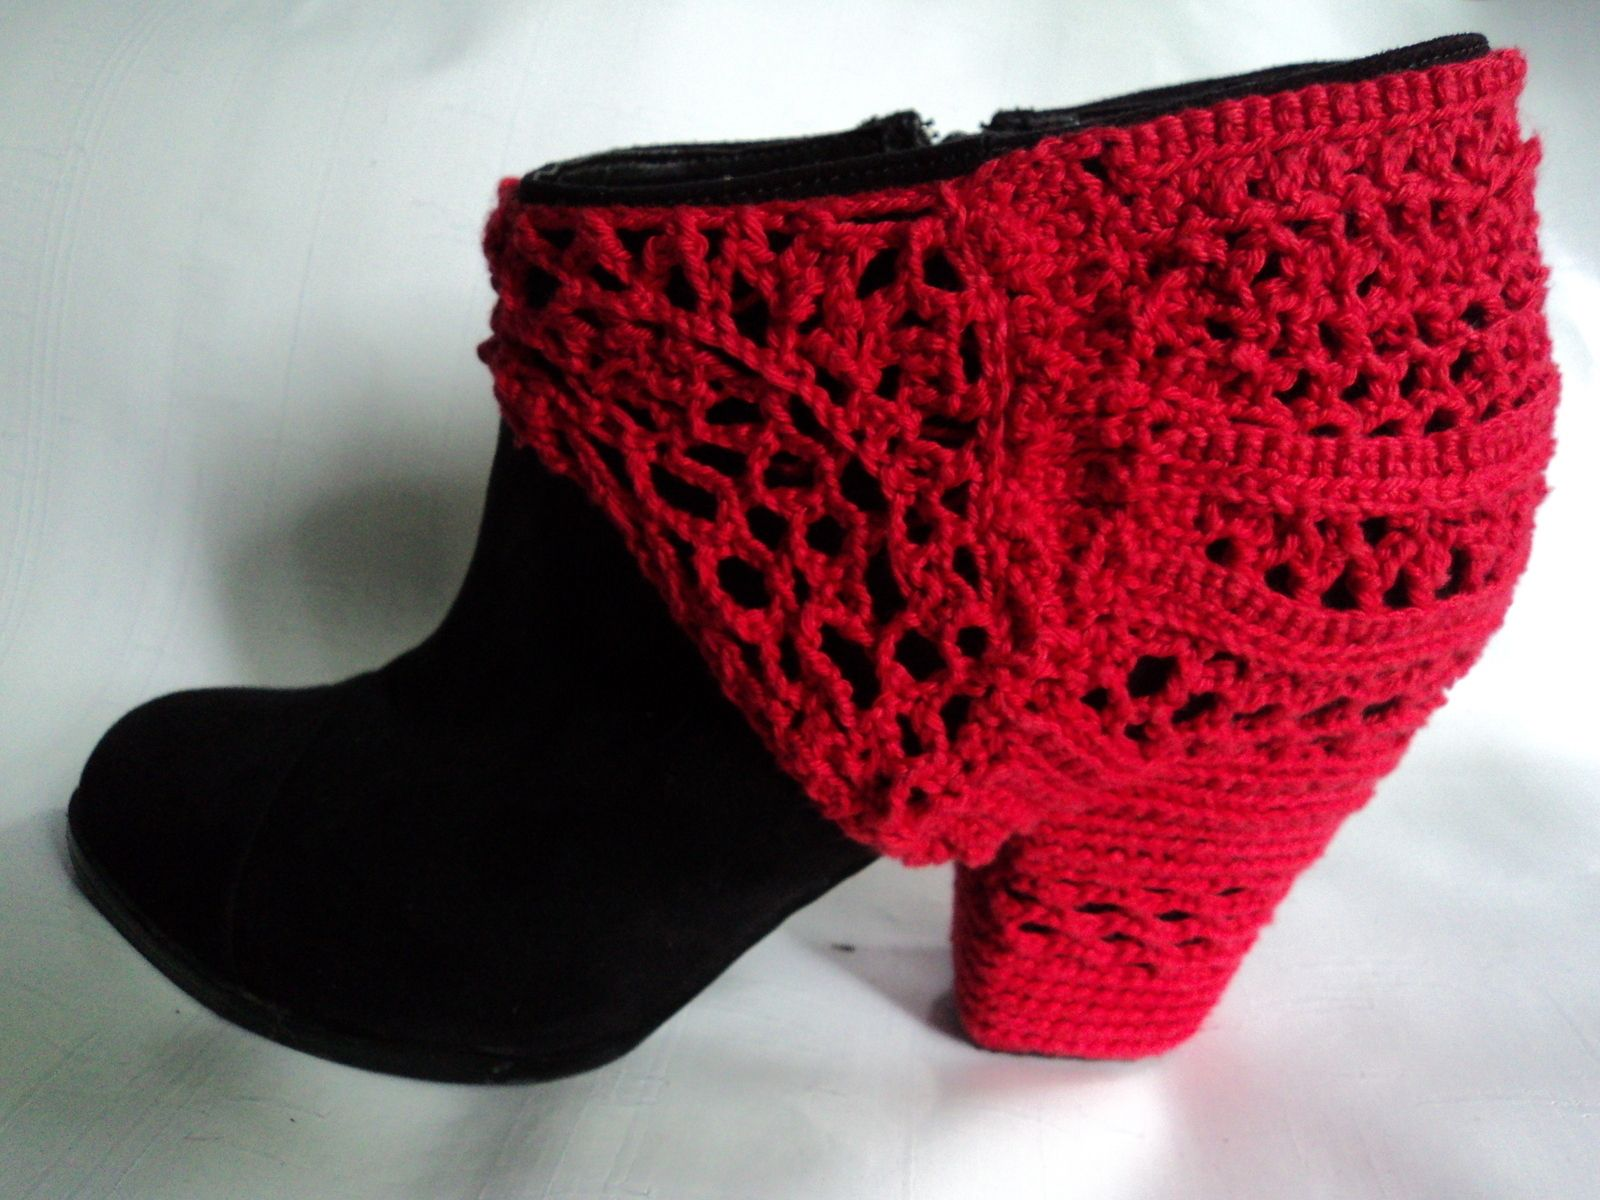 Crochet Heel Sock... I'm not sure why but interesting all the same.